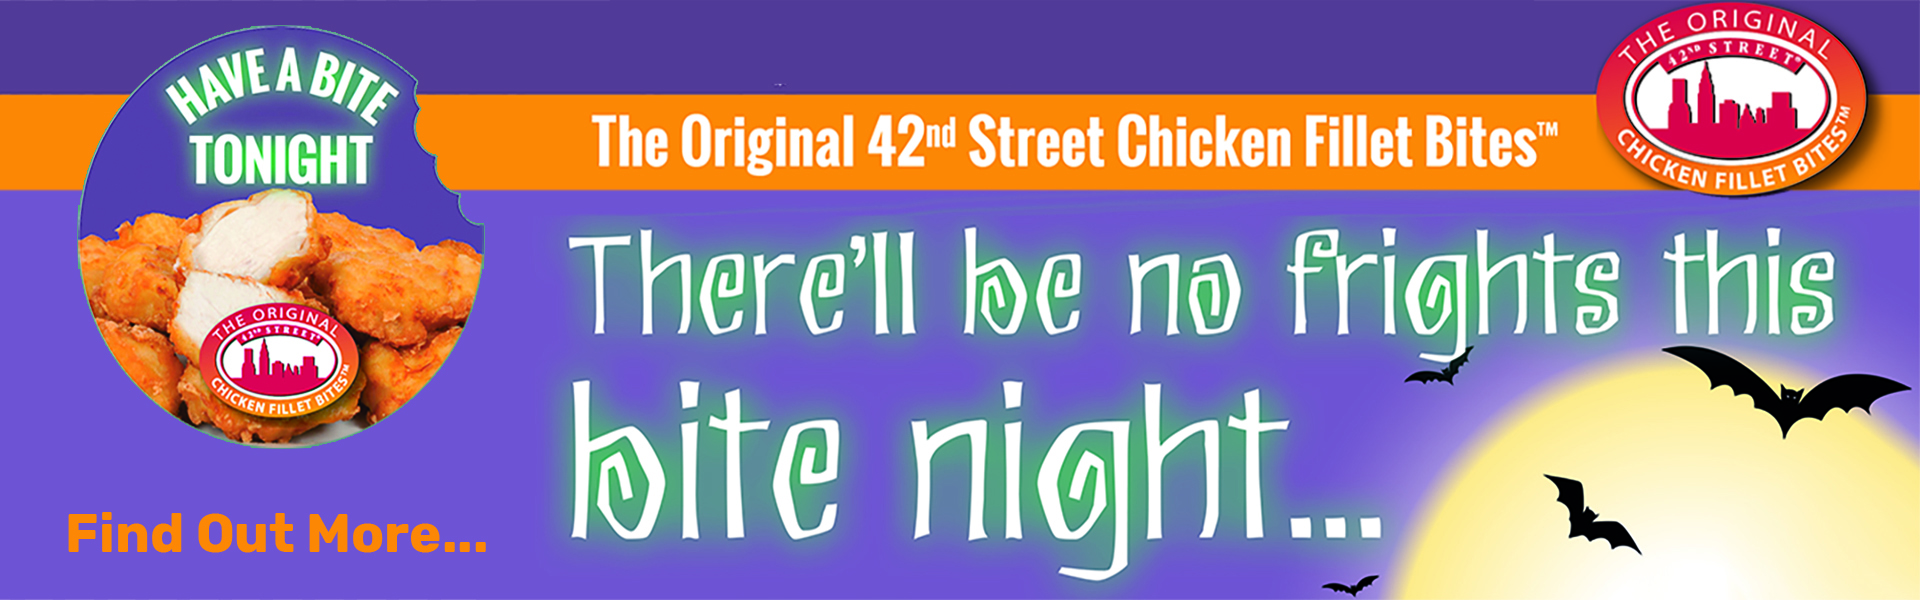 There'll Be No Frights This Bite Night With 42nd Street Chicken Fillet Bites